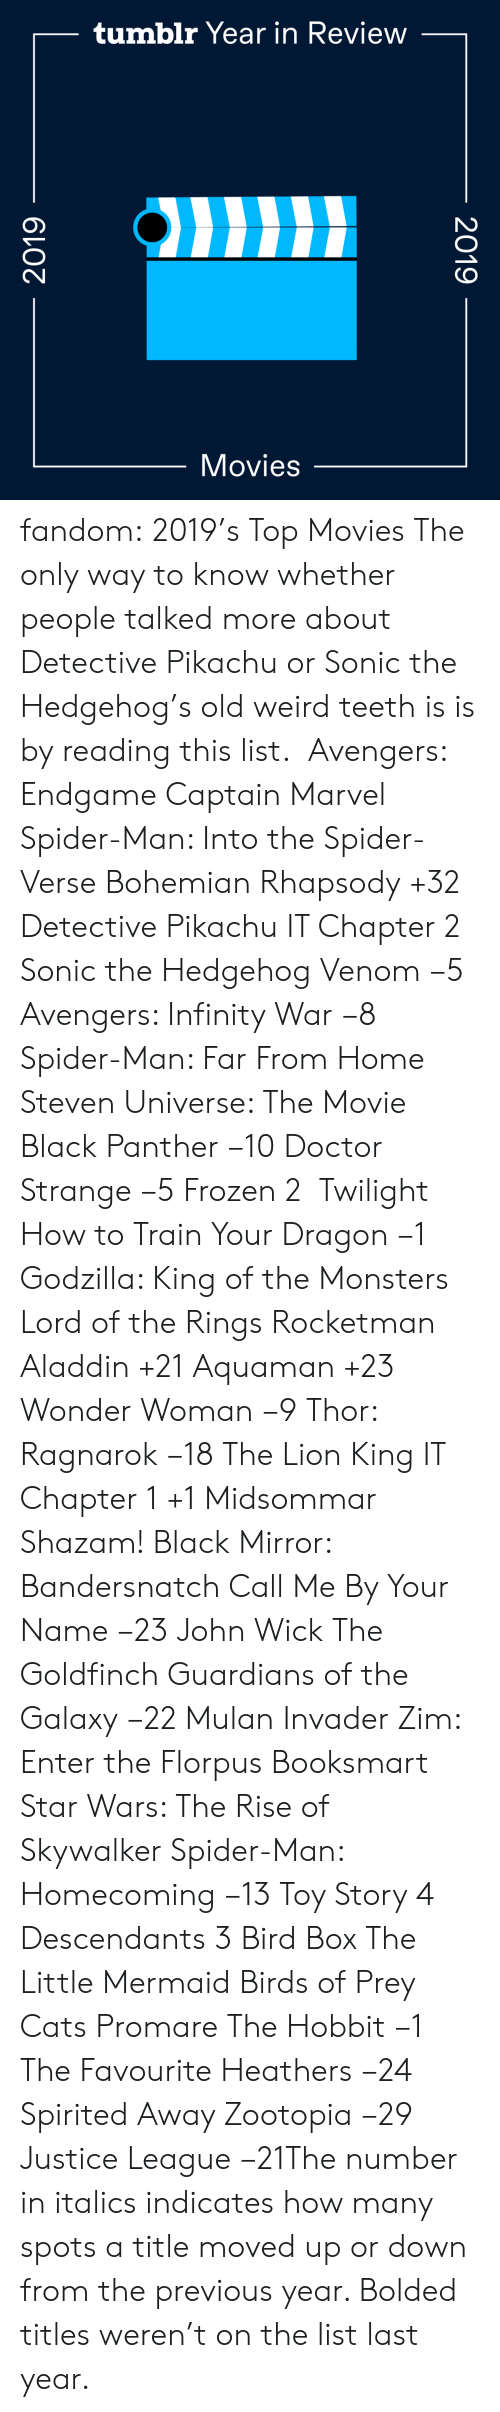 galaxy: tumblr Year in Review  Movies  2019  2019 fandom:  2019's Top Movies  The only way to know whether people talked more about Detective Pikachu or Sonic the Hedgehog's old weird teeth is is by reading this list.   Avengers: Endgame  Captain Marvel  Spider-Man: Into the Spider-Verse  Bohemian Rhapsody +32  Detective Pikachu  IT Chapter 2  Sonic the Hedgehog  Venom −5  Avengers: Infinity War −8  Spider-Man: Far From Home  Steven Universe: The Movie  Black Panther −10  Doctor Strange −5  Frozen 2   Twilight  How to Train Your Dragon −1  Godzilla: King of the Monsters  Lord of the Rings  Rocketman  Aladdin +21  Aquaman +23  Wonder Woman −9  Thor: Ragnarok −18  The Lion King  IT Chapter 1 +1  Midsommar  Shazam!  Black Mirror: Bandersnatch  Call Me By Your Name −23  John Wick  The Goldfinch  Guardians of the Galaxy −22  Mulan  Invader Zim: Enter the Florpus  Booksmart  Star Wars: The Rise of Skywalker  Spider-Man: Homecoming −13  Toy Story 4  Descendants 3  Bird Box  The Little Mermaid  Birds of Prey  Cats  Promare  The Hobbit −1  The Favourite  Heathers −24  Spirited Away  Zootopia −29 Justice League −21The number in italics indicates how many spots a title moved up or down from the previous year. Bolded titles weren't on the list last year.